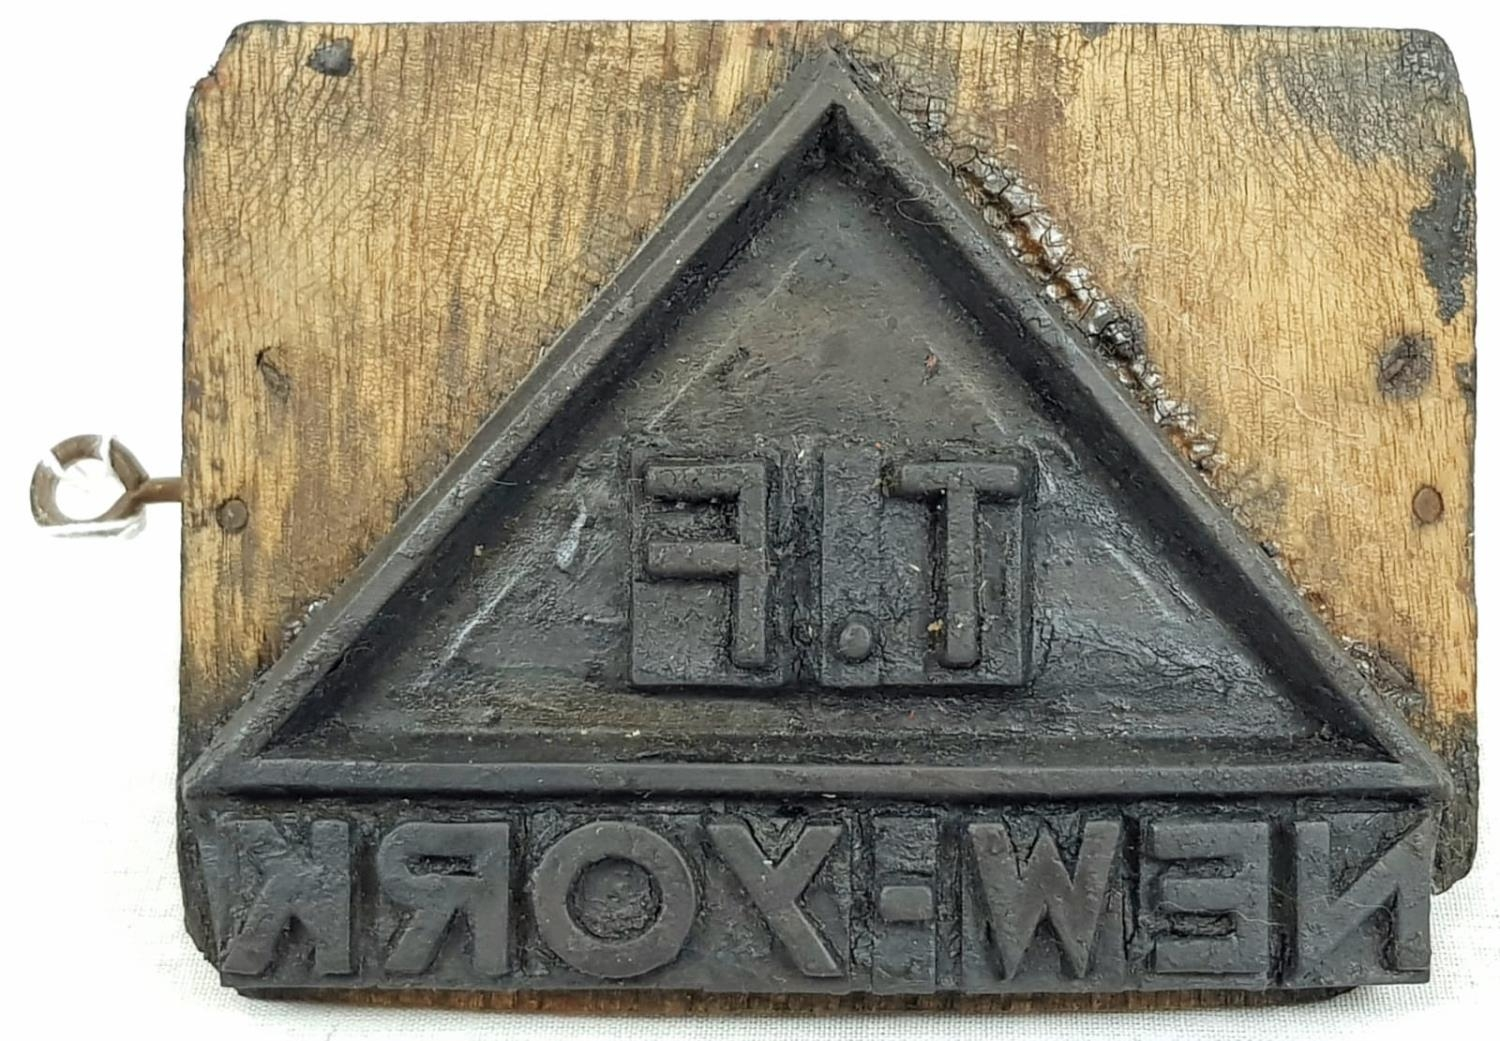 """AN ANTIQUE FREIGHT BOX STAMP WITH """"T.F NEW YORK"""" ON IT. 10 X 14cms"""